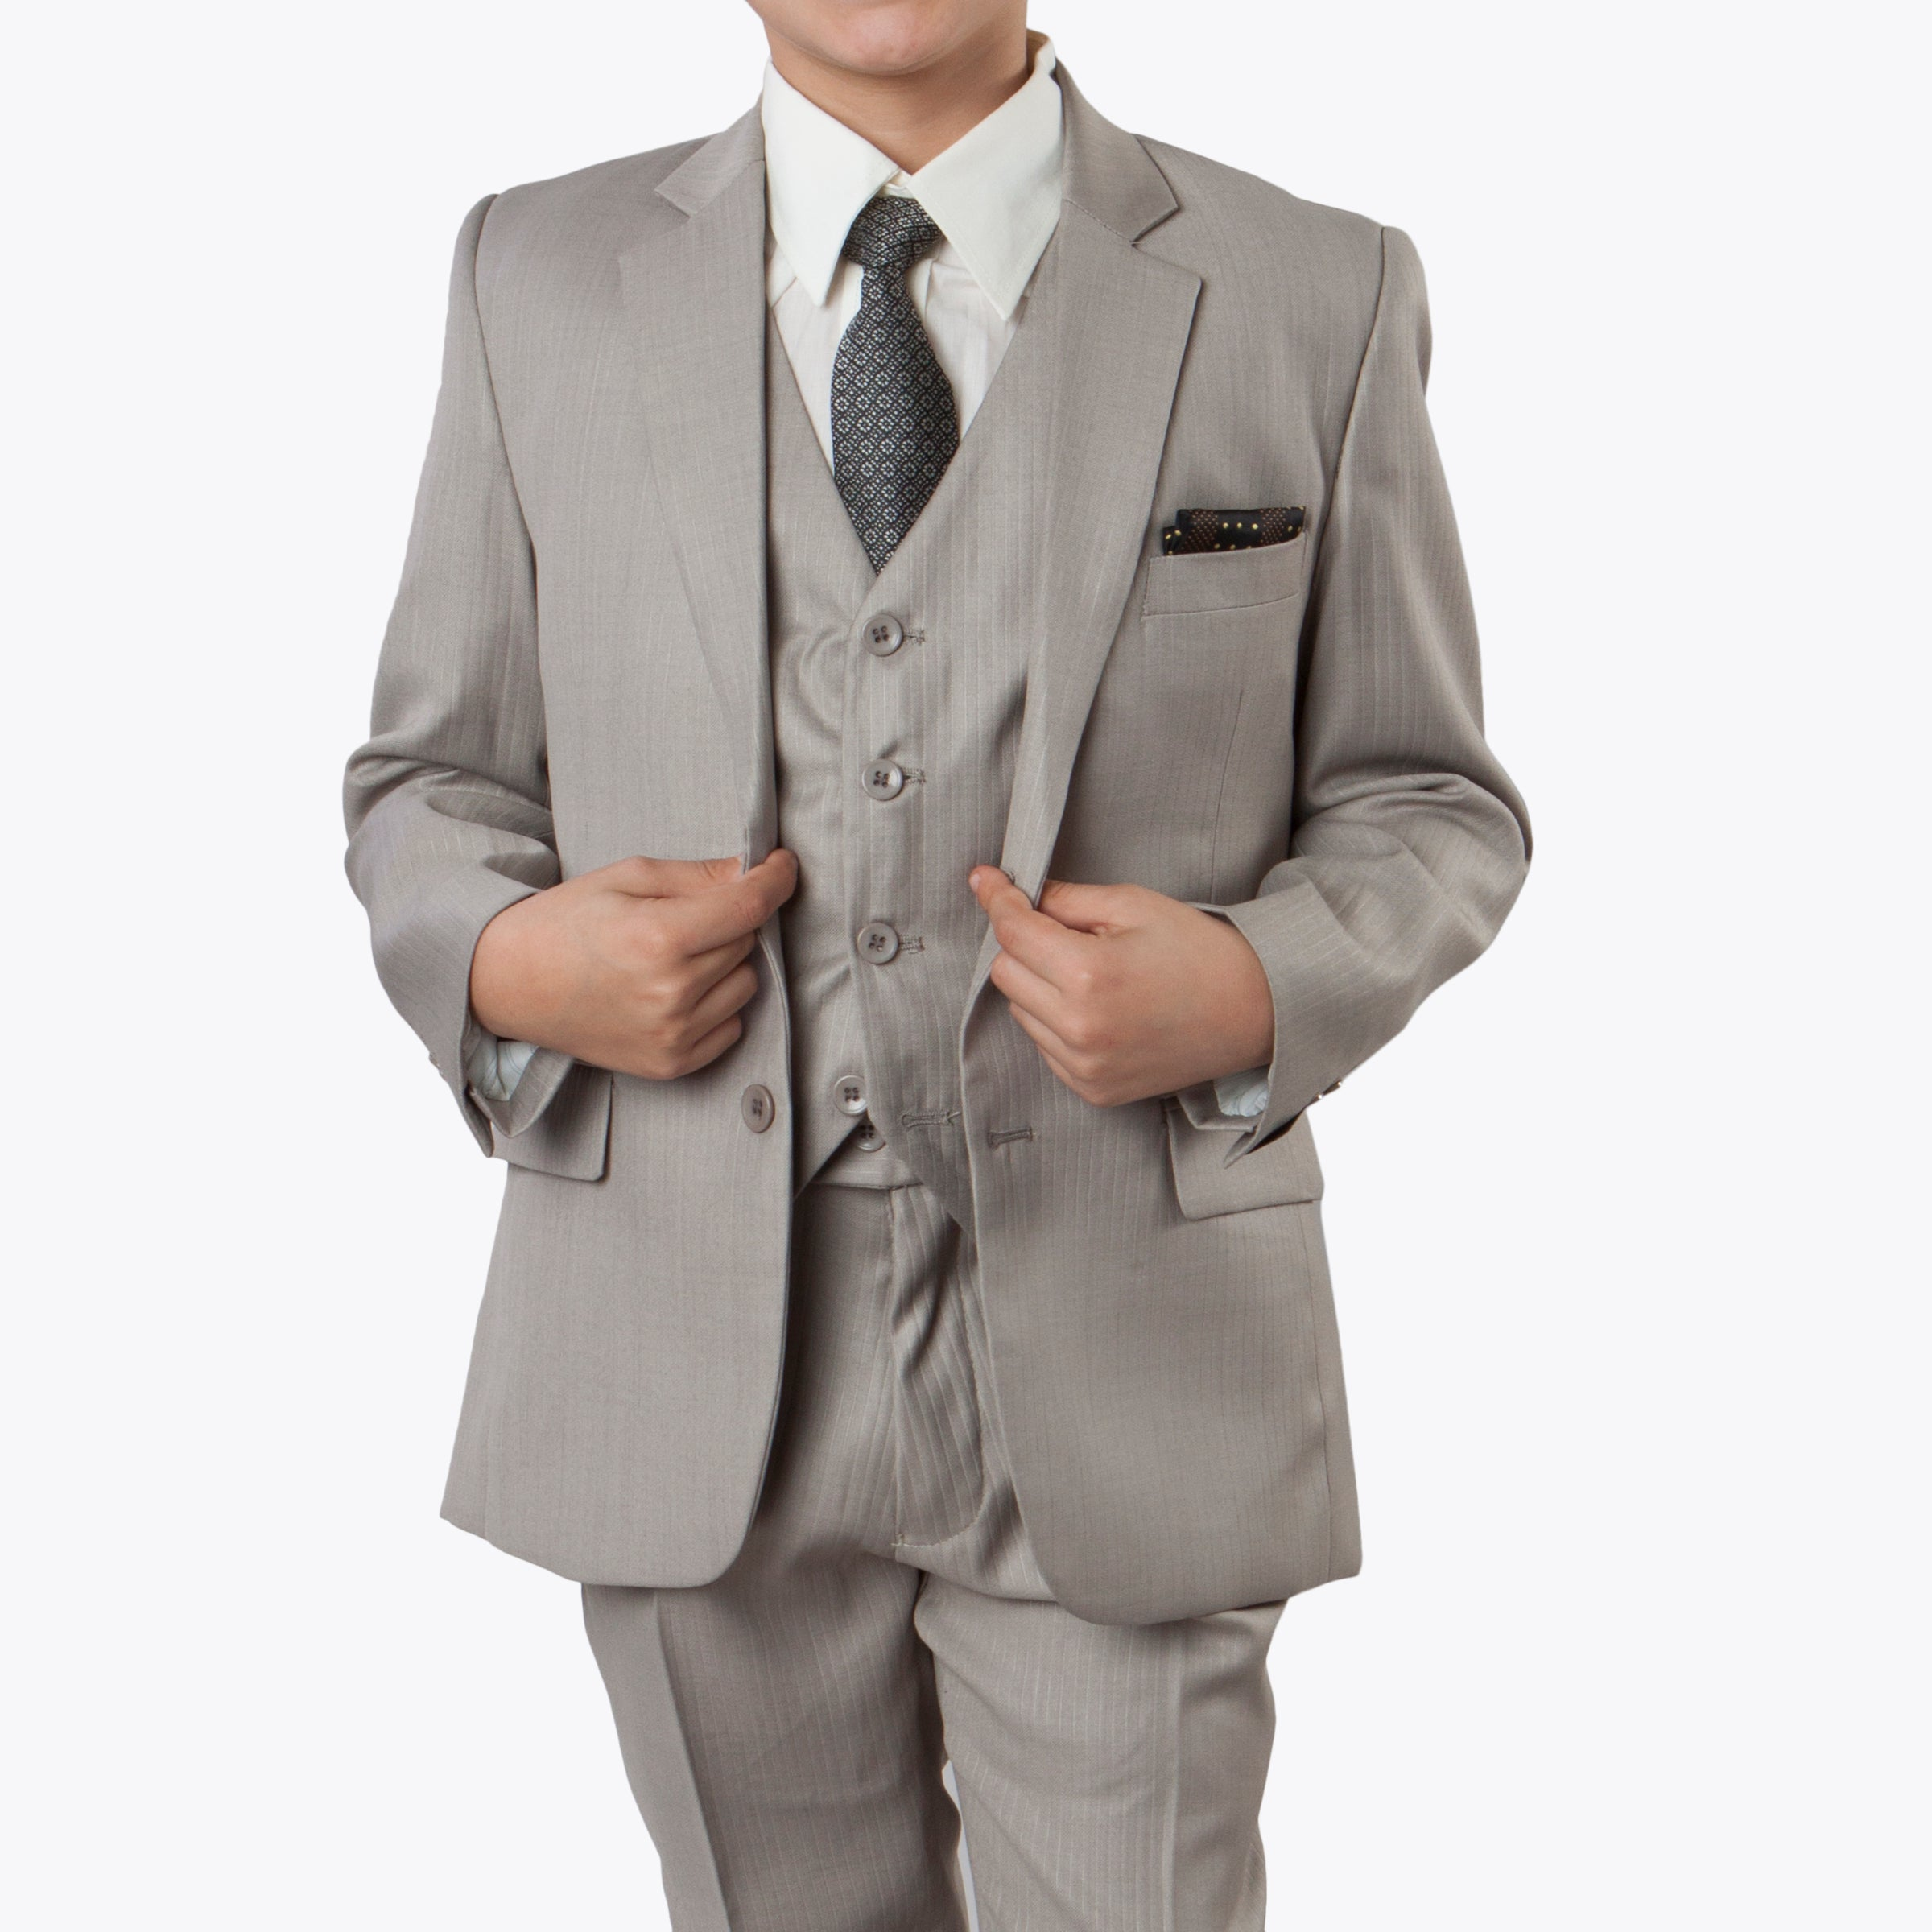 Tazio Dark Tan Formal Suits For Boys